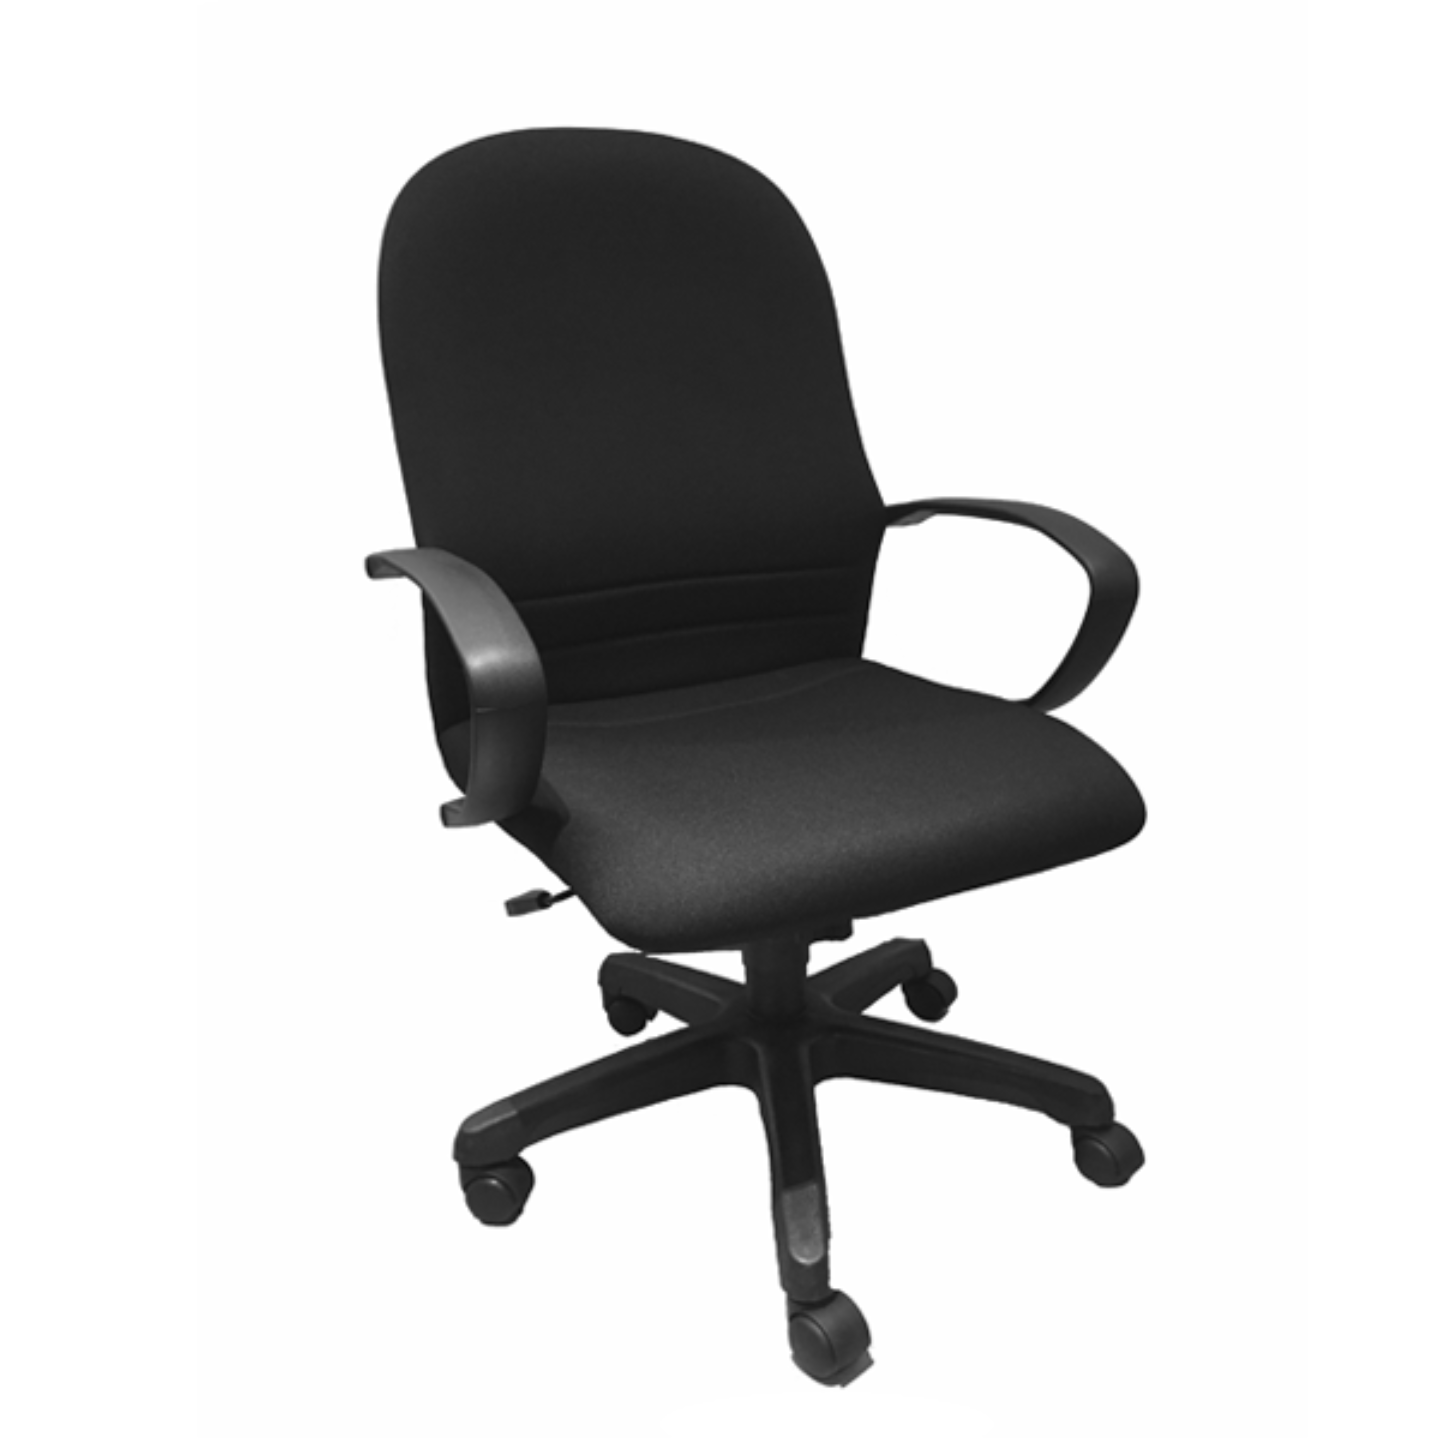 LE 102 Mid Back Chair (Fabric)